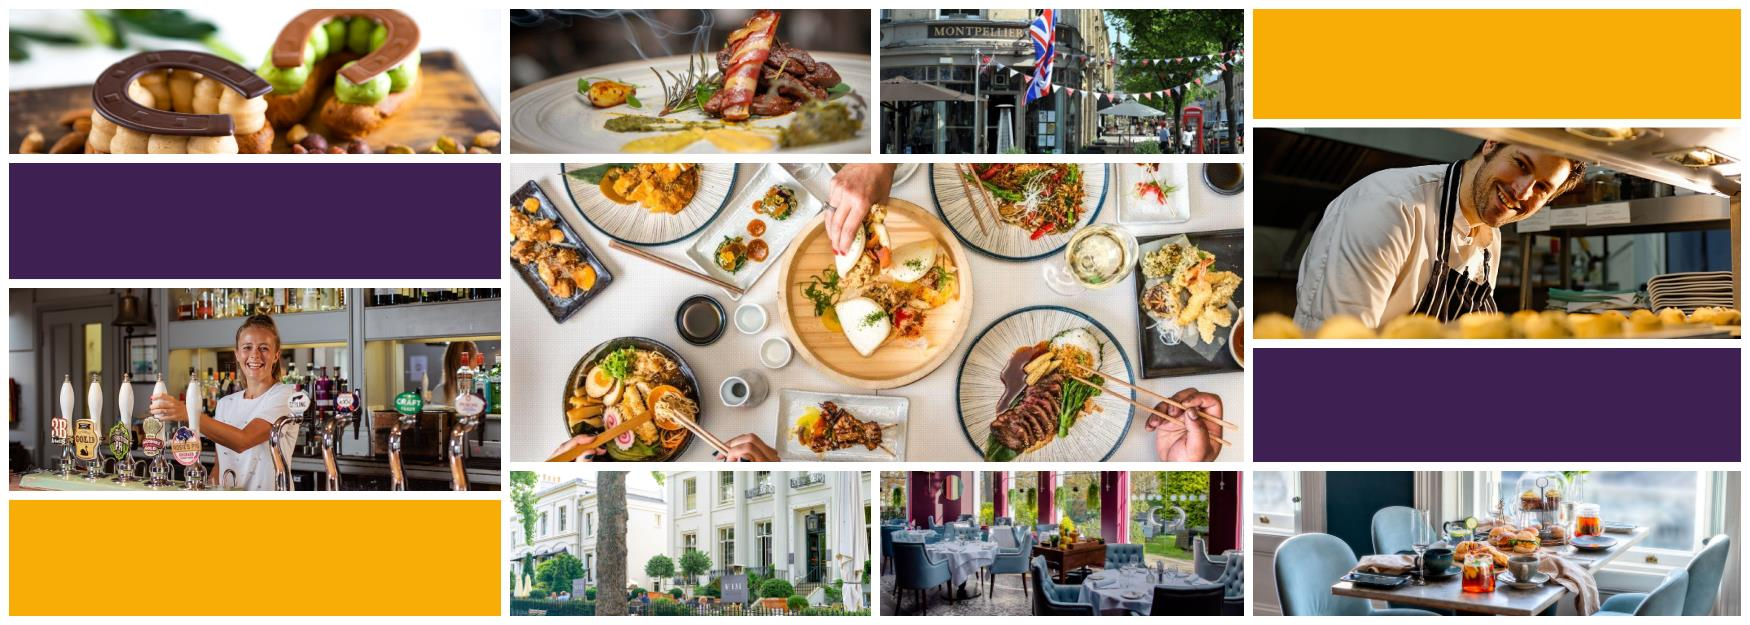 Weekend in Cheltenham for foodies itinerary